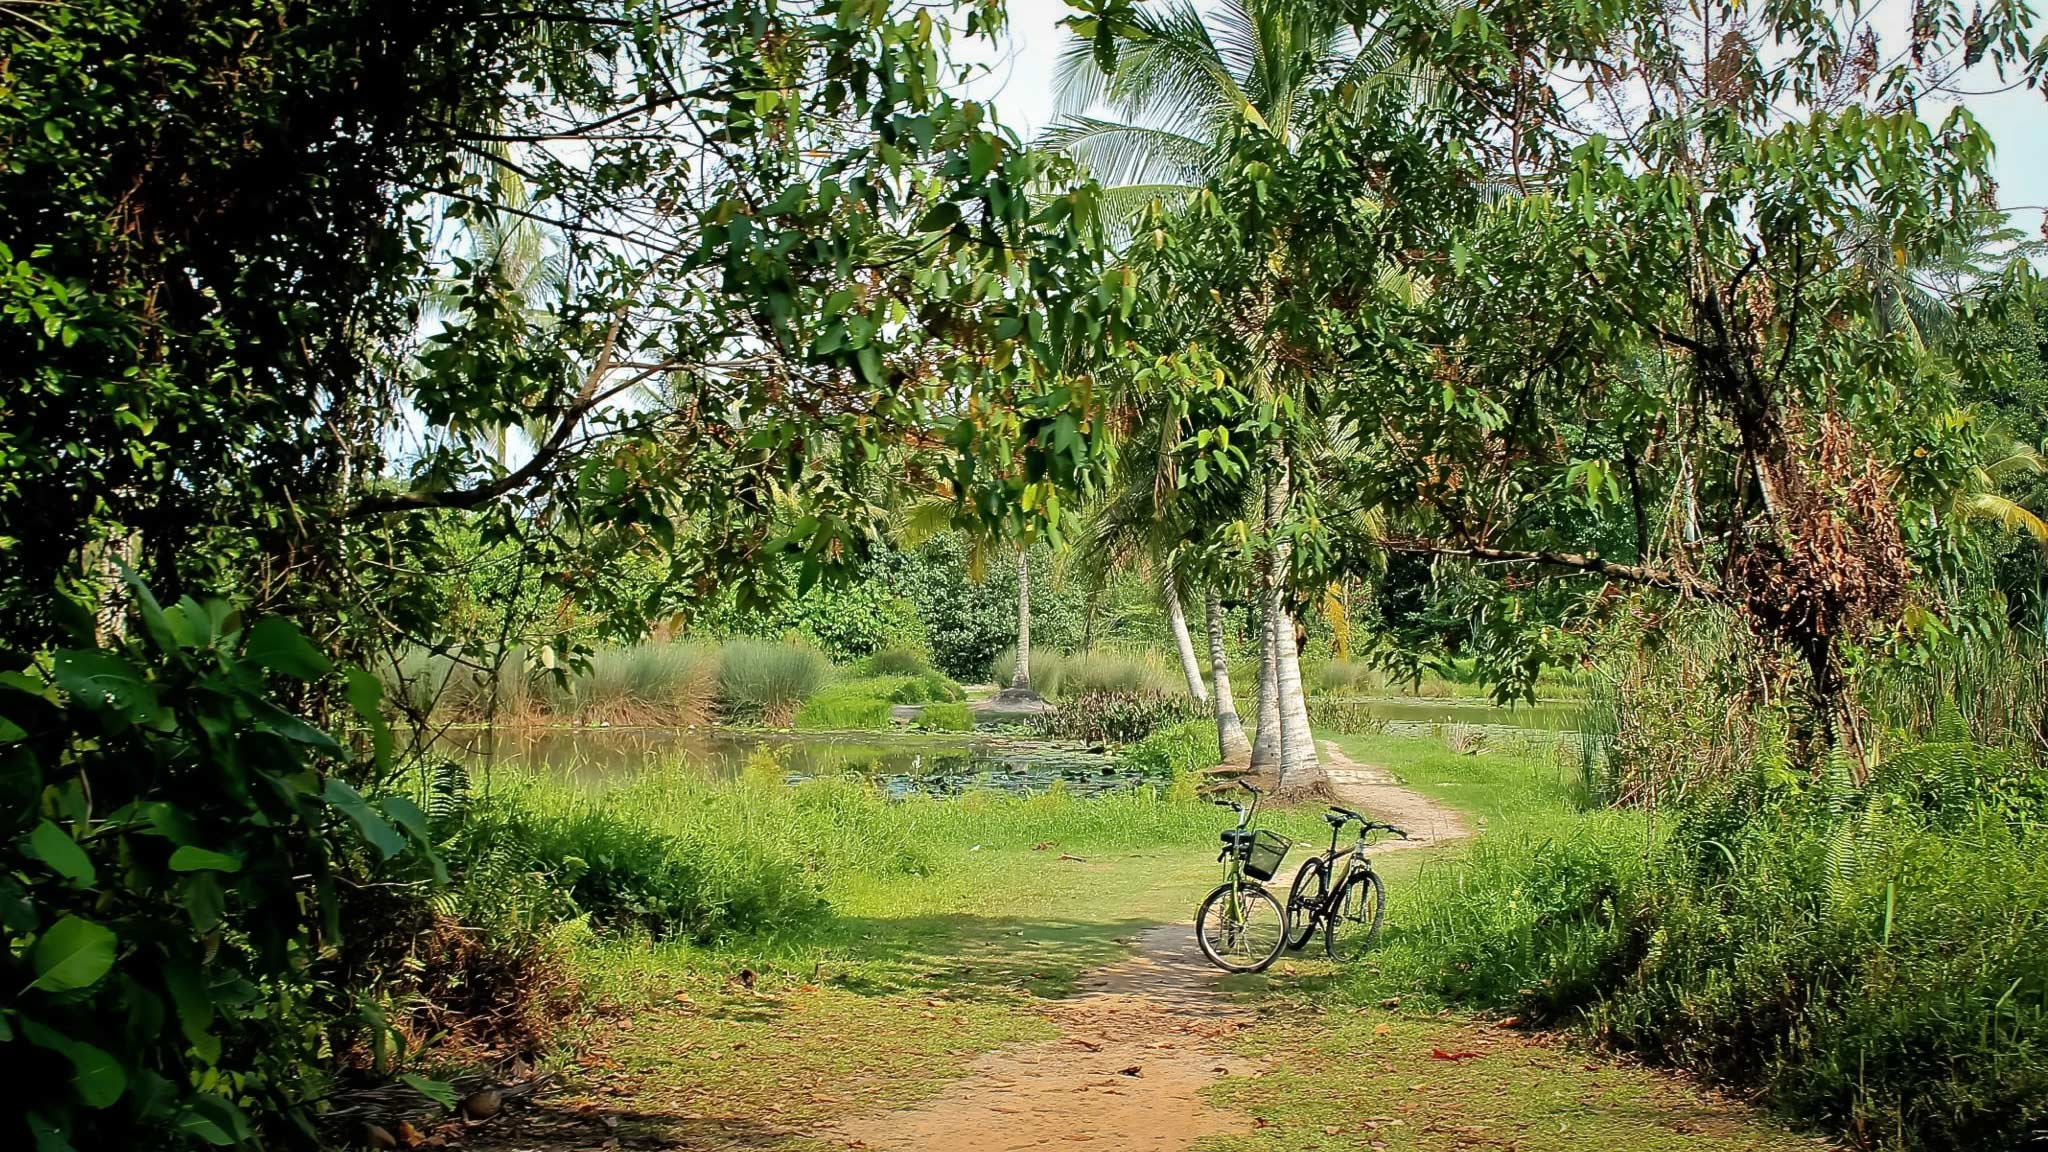 Cycling around the island of Pulua Ubin